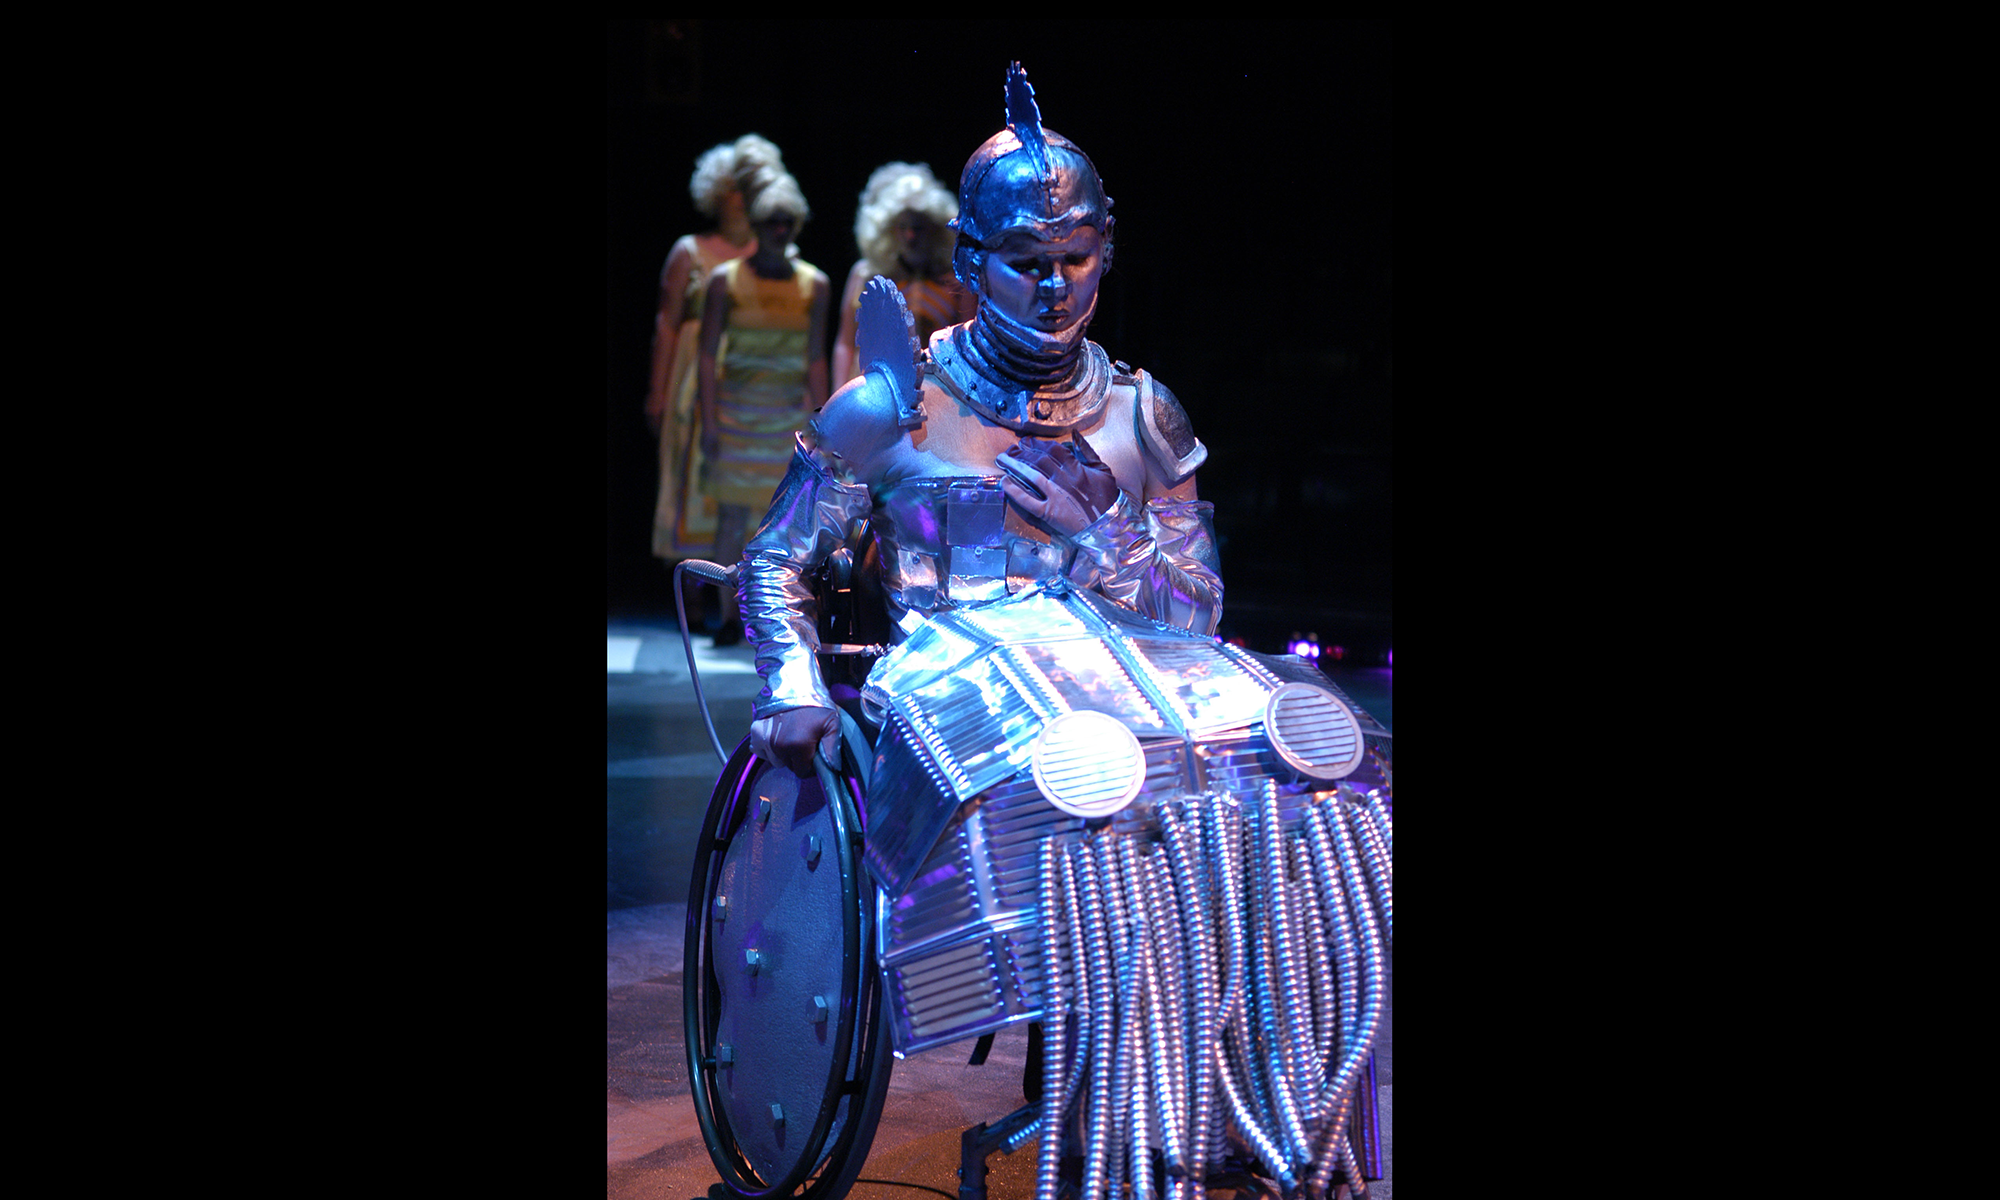 wheelchair user in dramatic lighting in tin metal costume from head to wheel, saw blade on top of head and shoulders, metal-plated corset and metal skirt